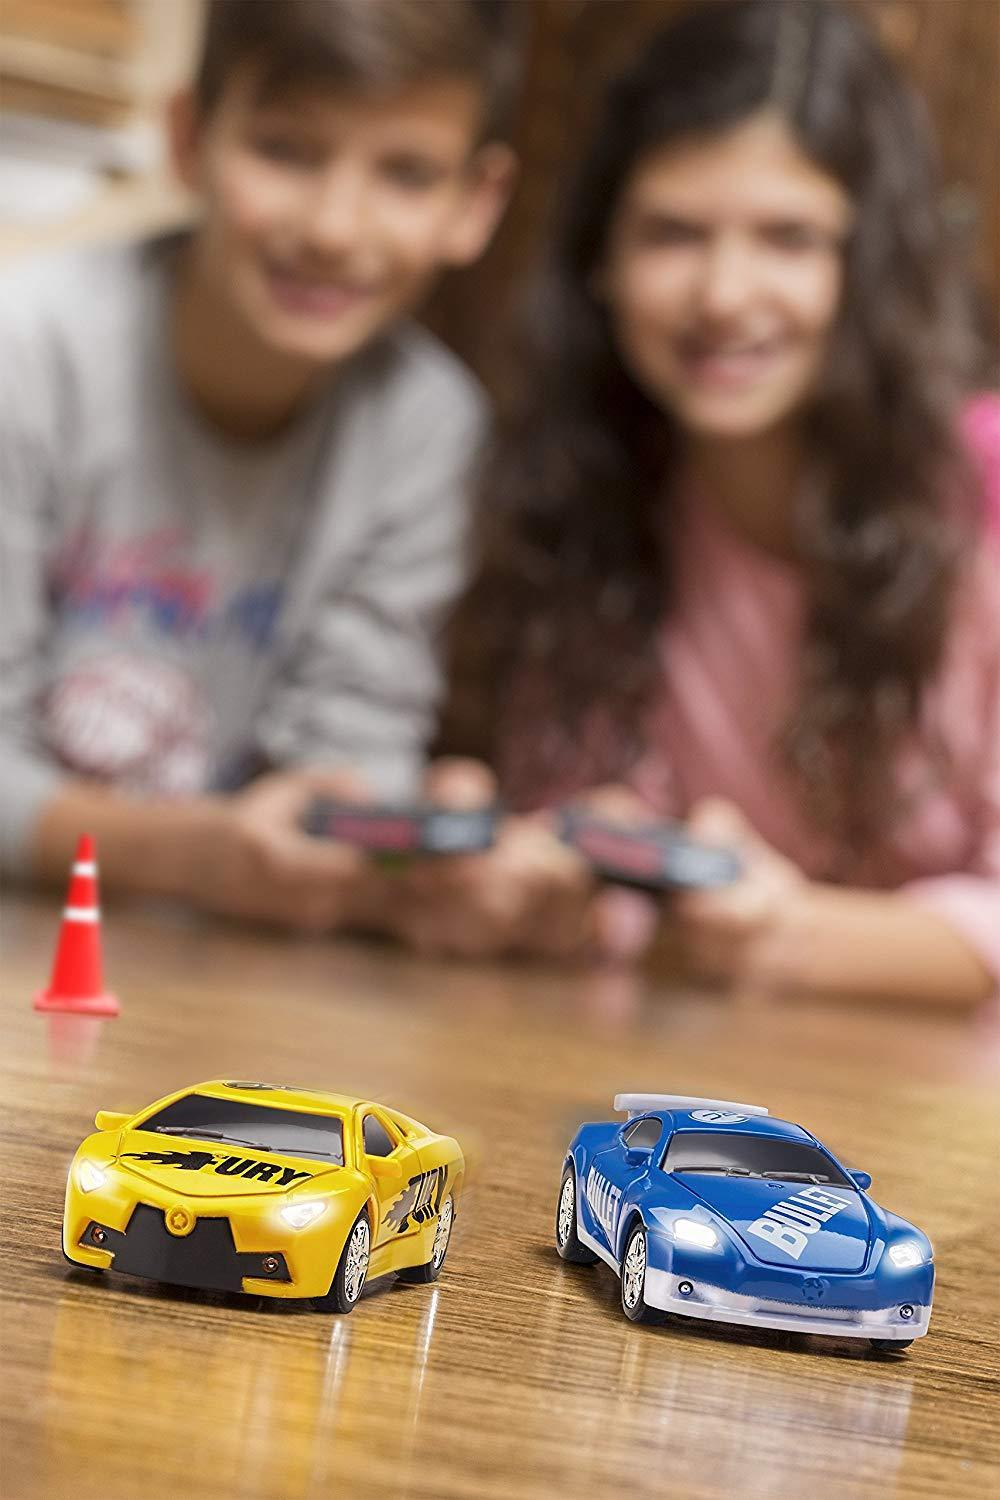 Copy of RC Pocket Racer Remote Controlled Micro Race Car Vehicle & Road As Seen On TV